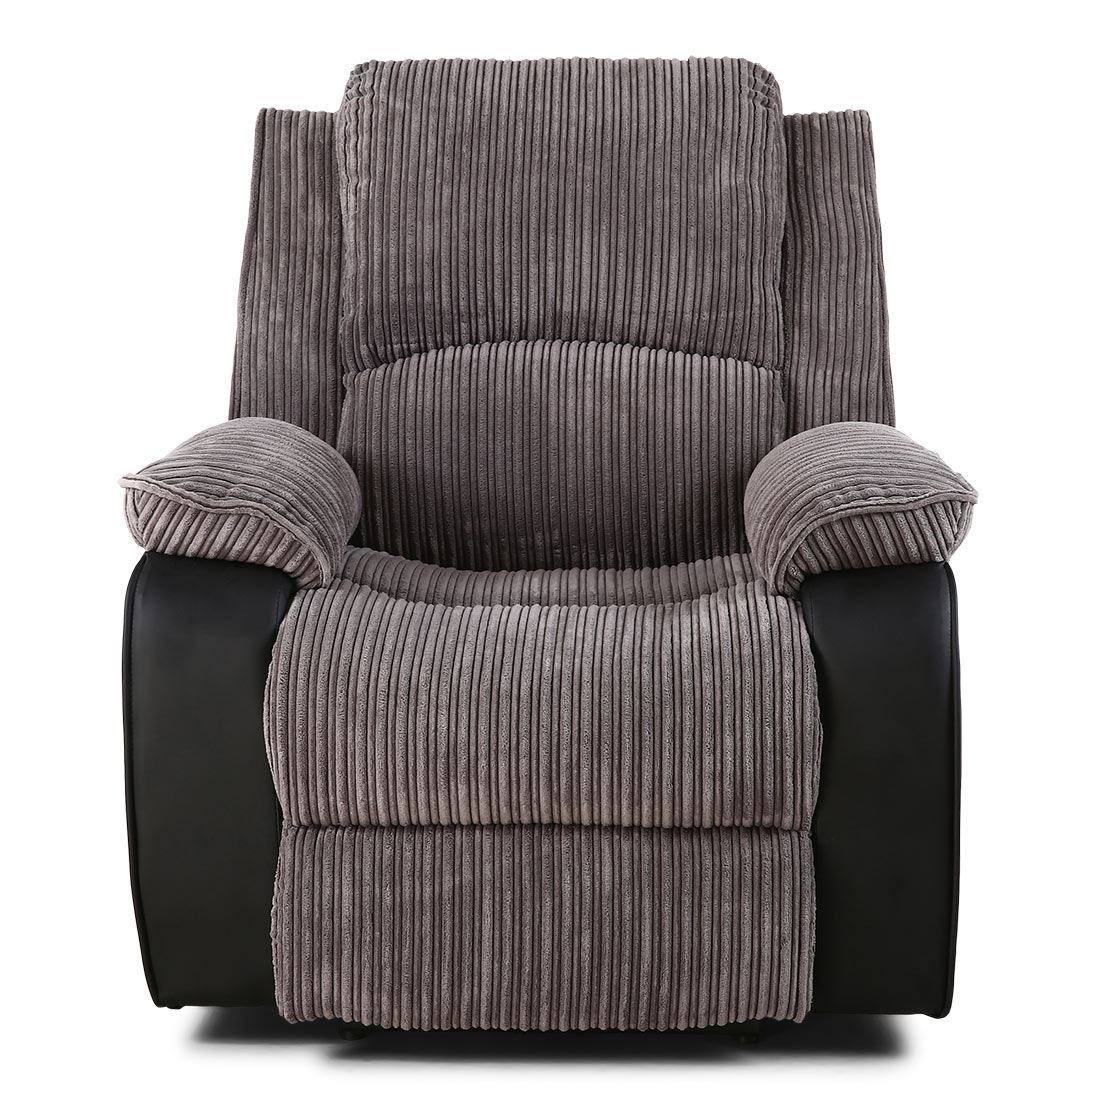 postana jumbo cord fabric power recliner armchair electric sofa reclining chair ebay. Black Bedroom Furniture Sets. Home Design Ideas